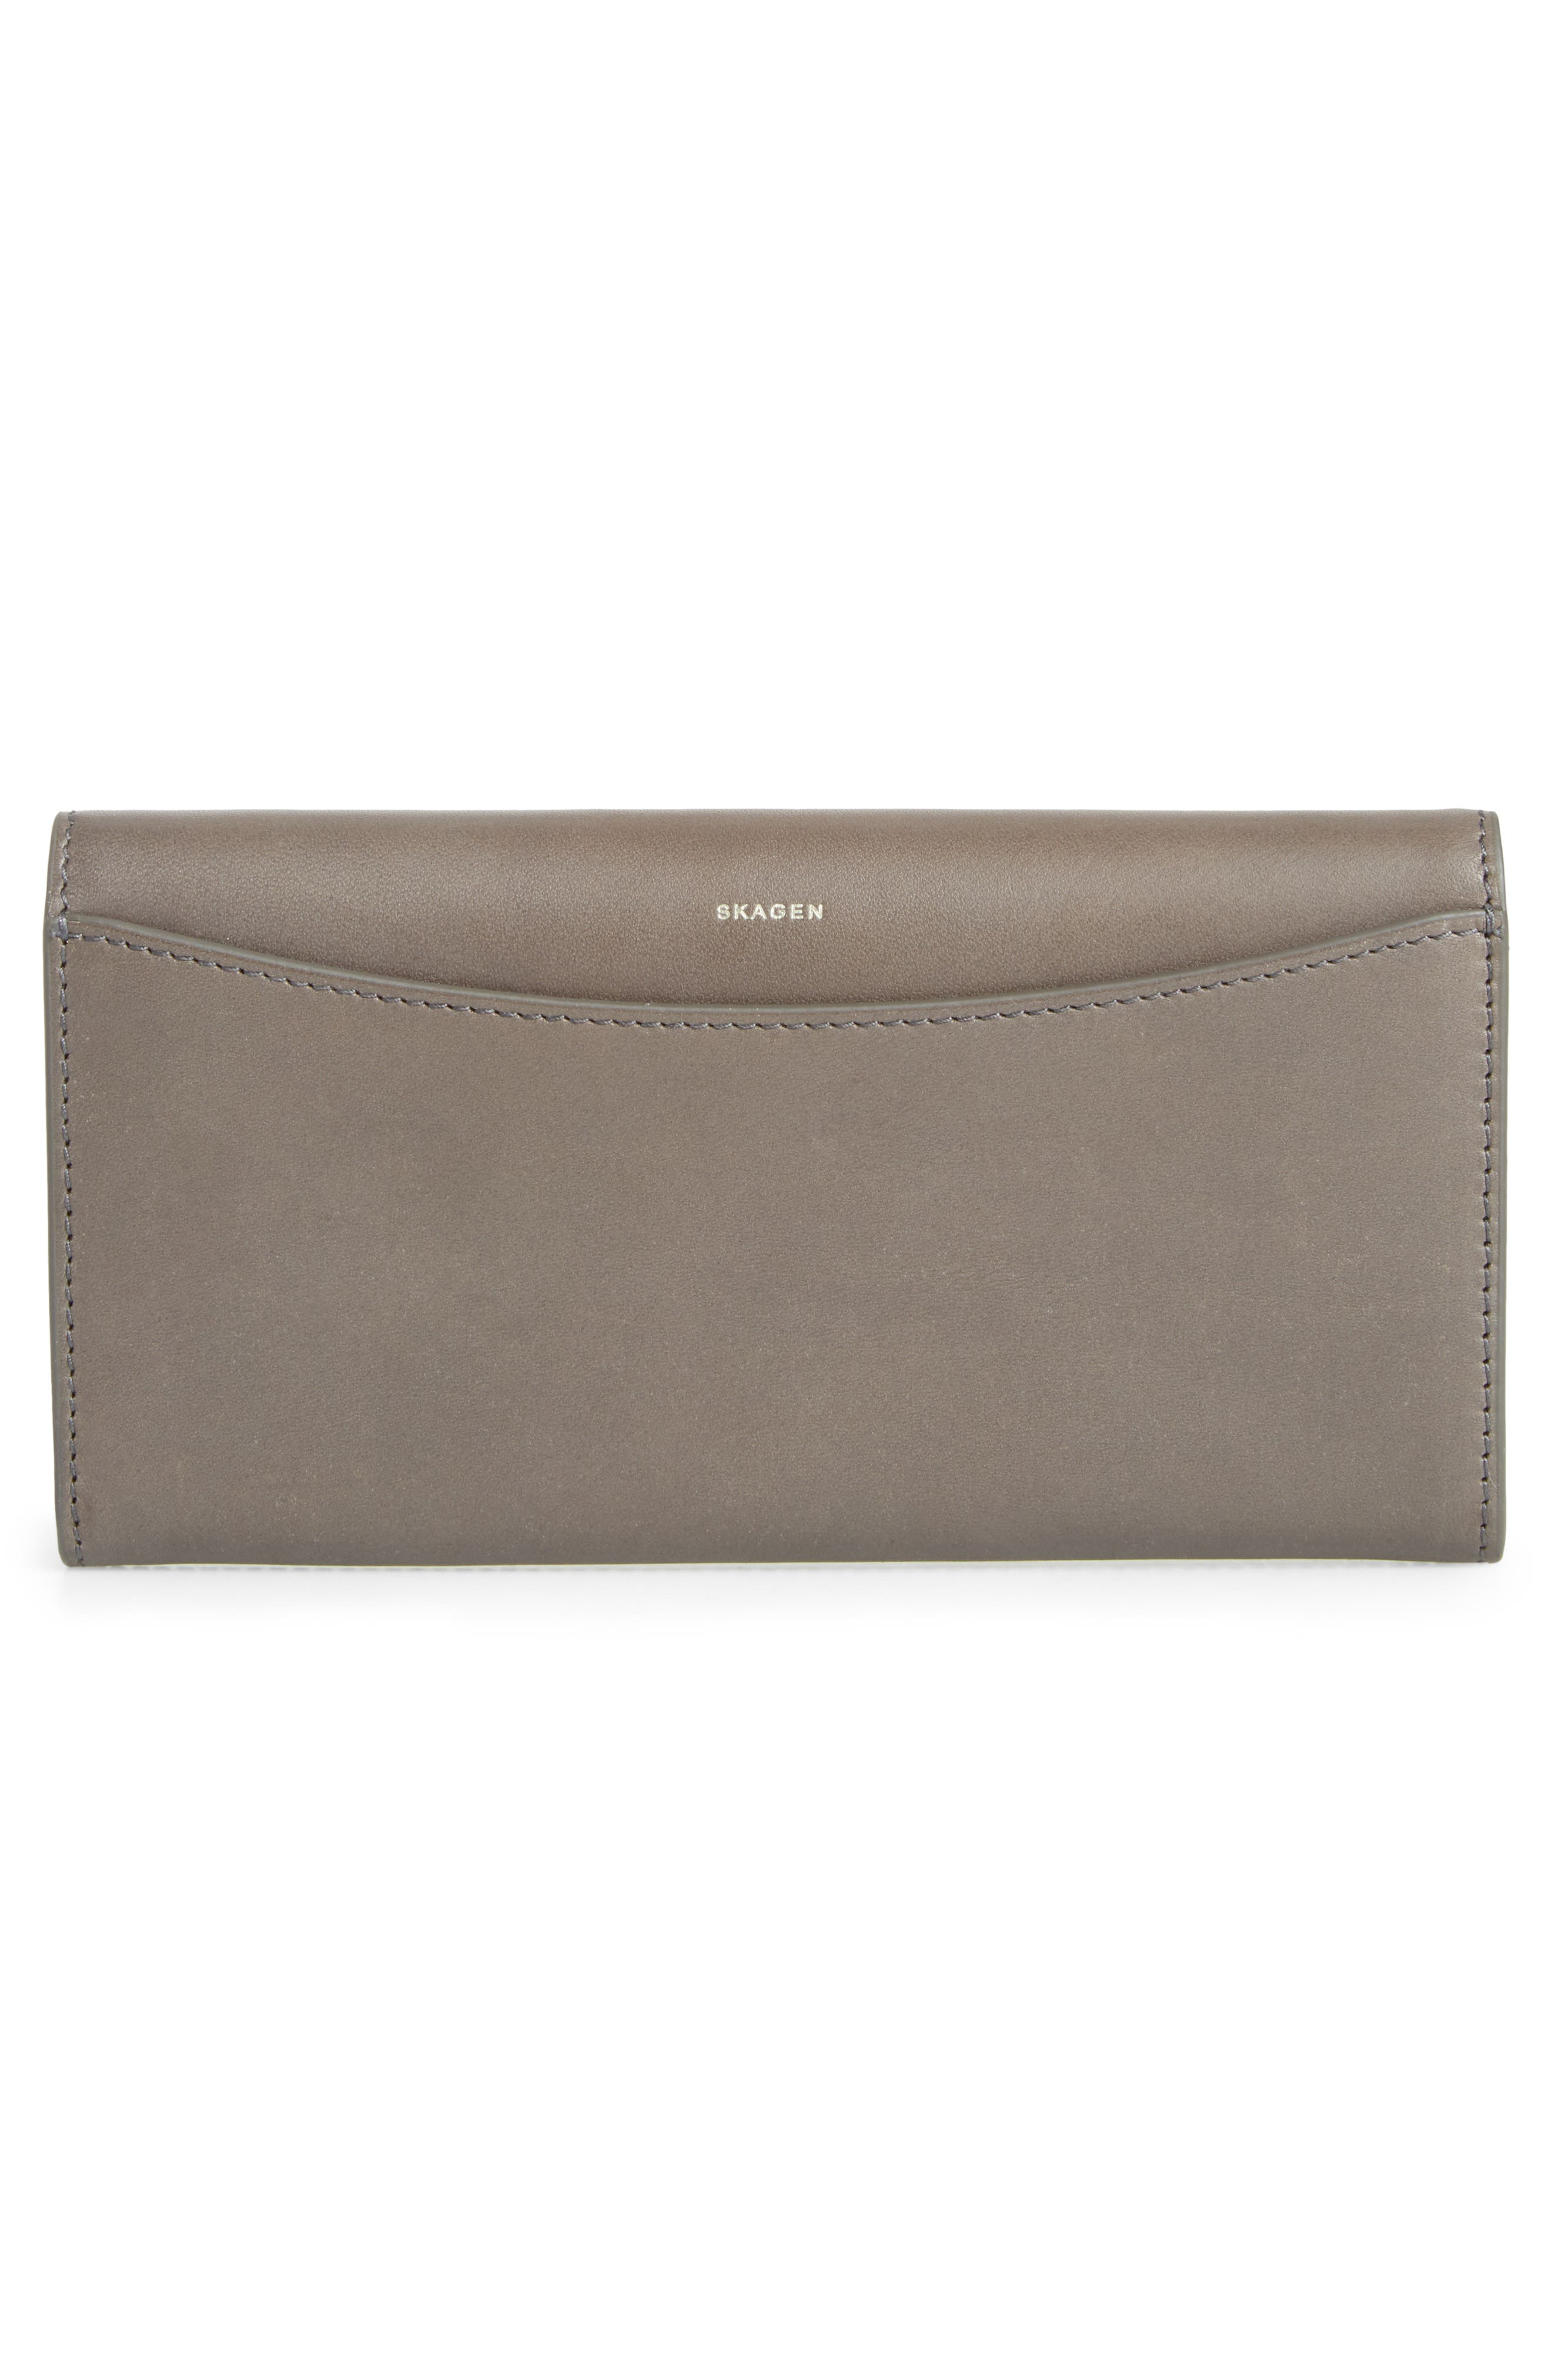 Leather Continental Flap Wallet,                             Alternate thumbnail 3, color,                             020